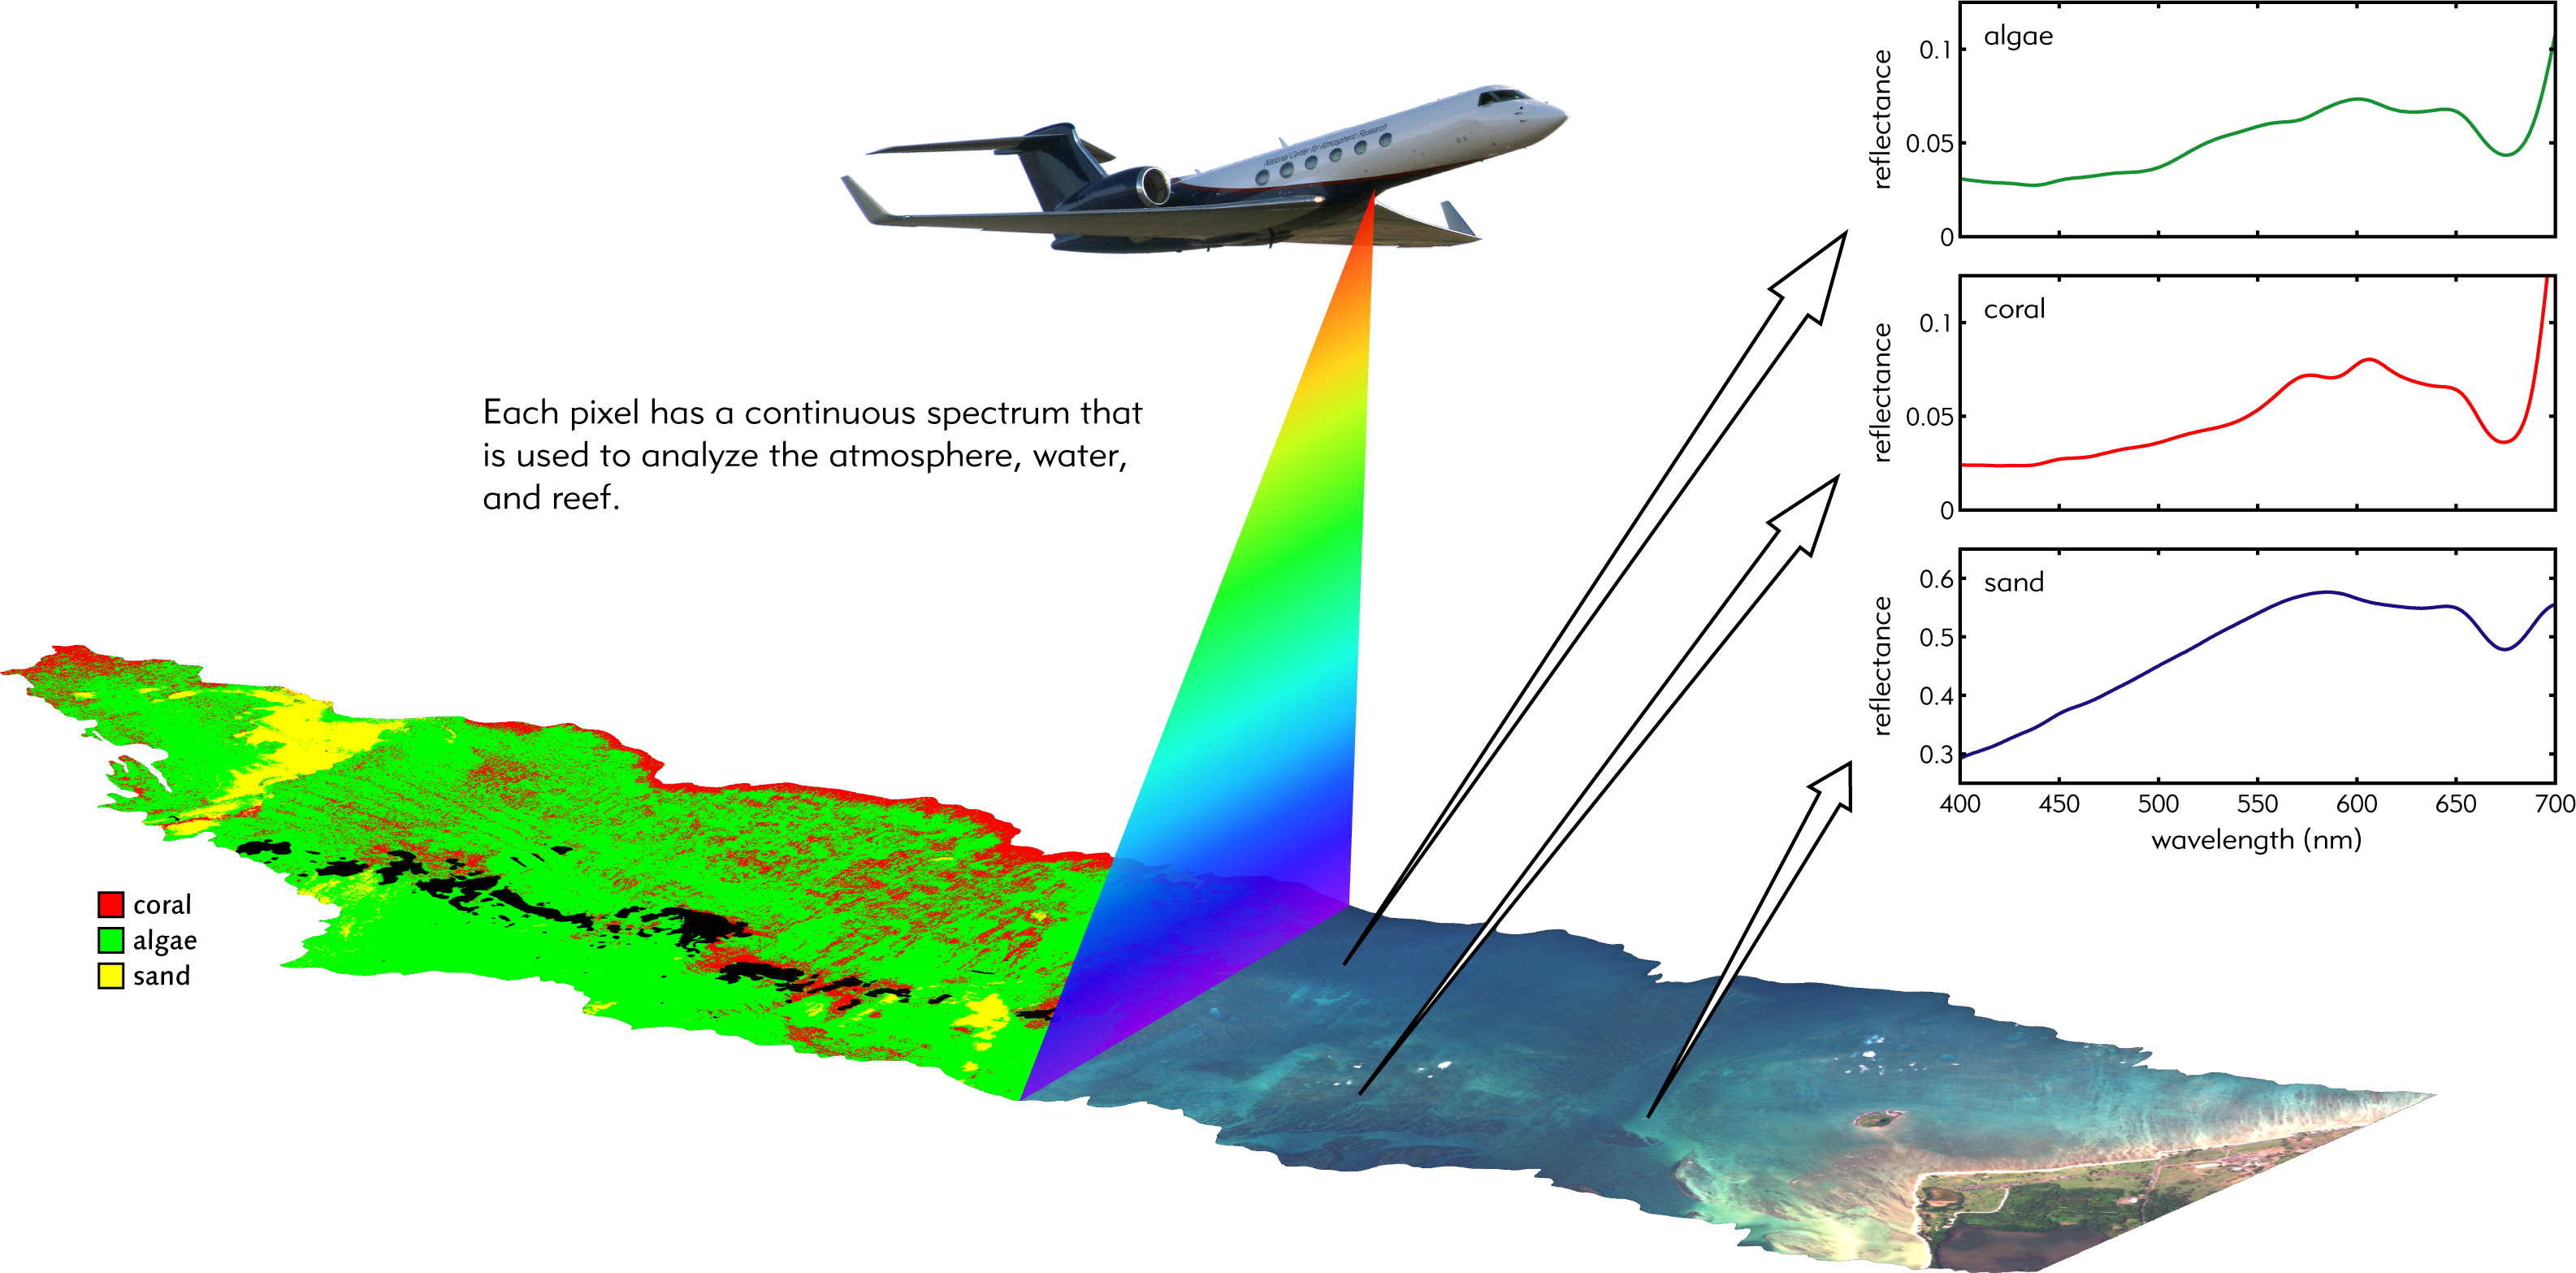 graphic showing aeroplane taking images of the seabed and graphically interpreting this information into data